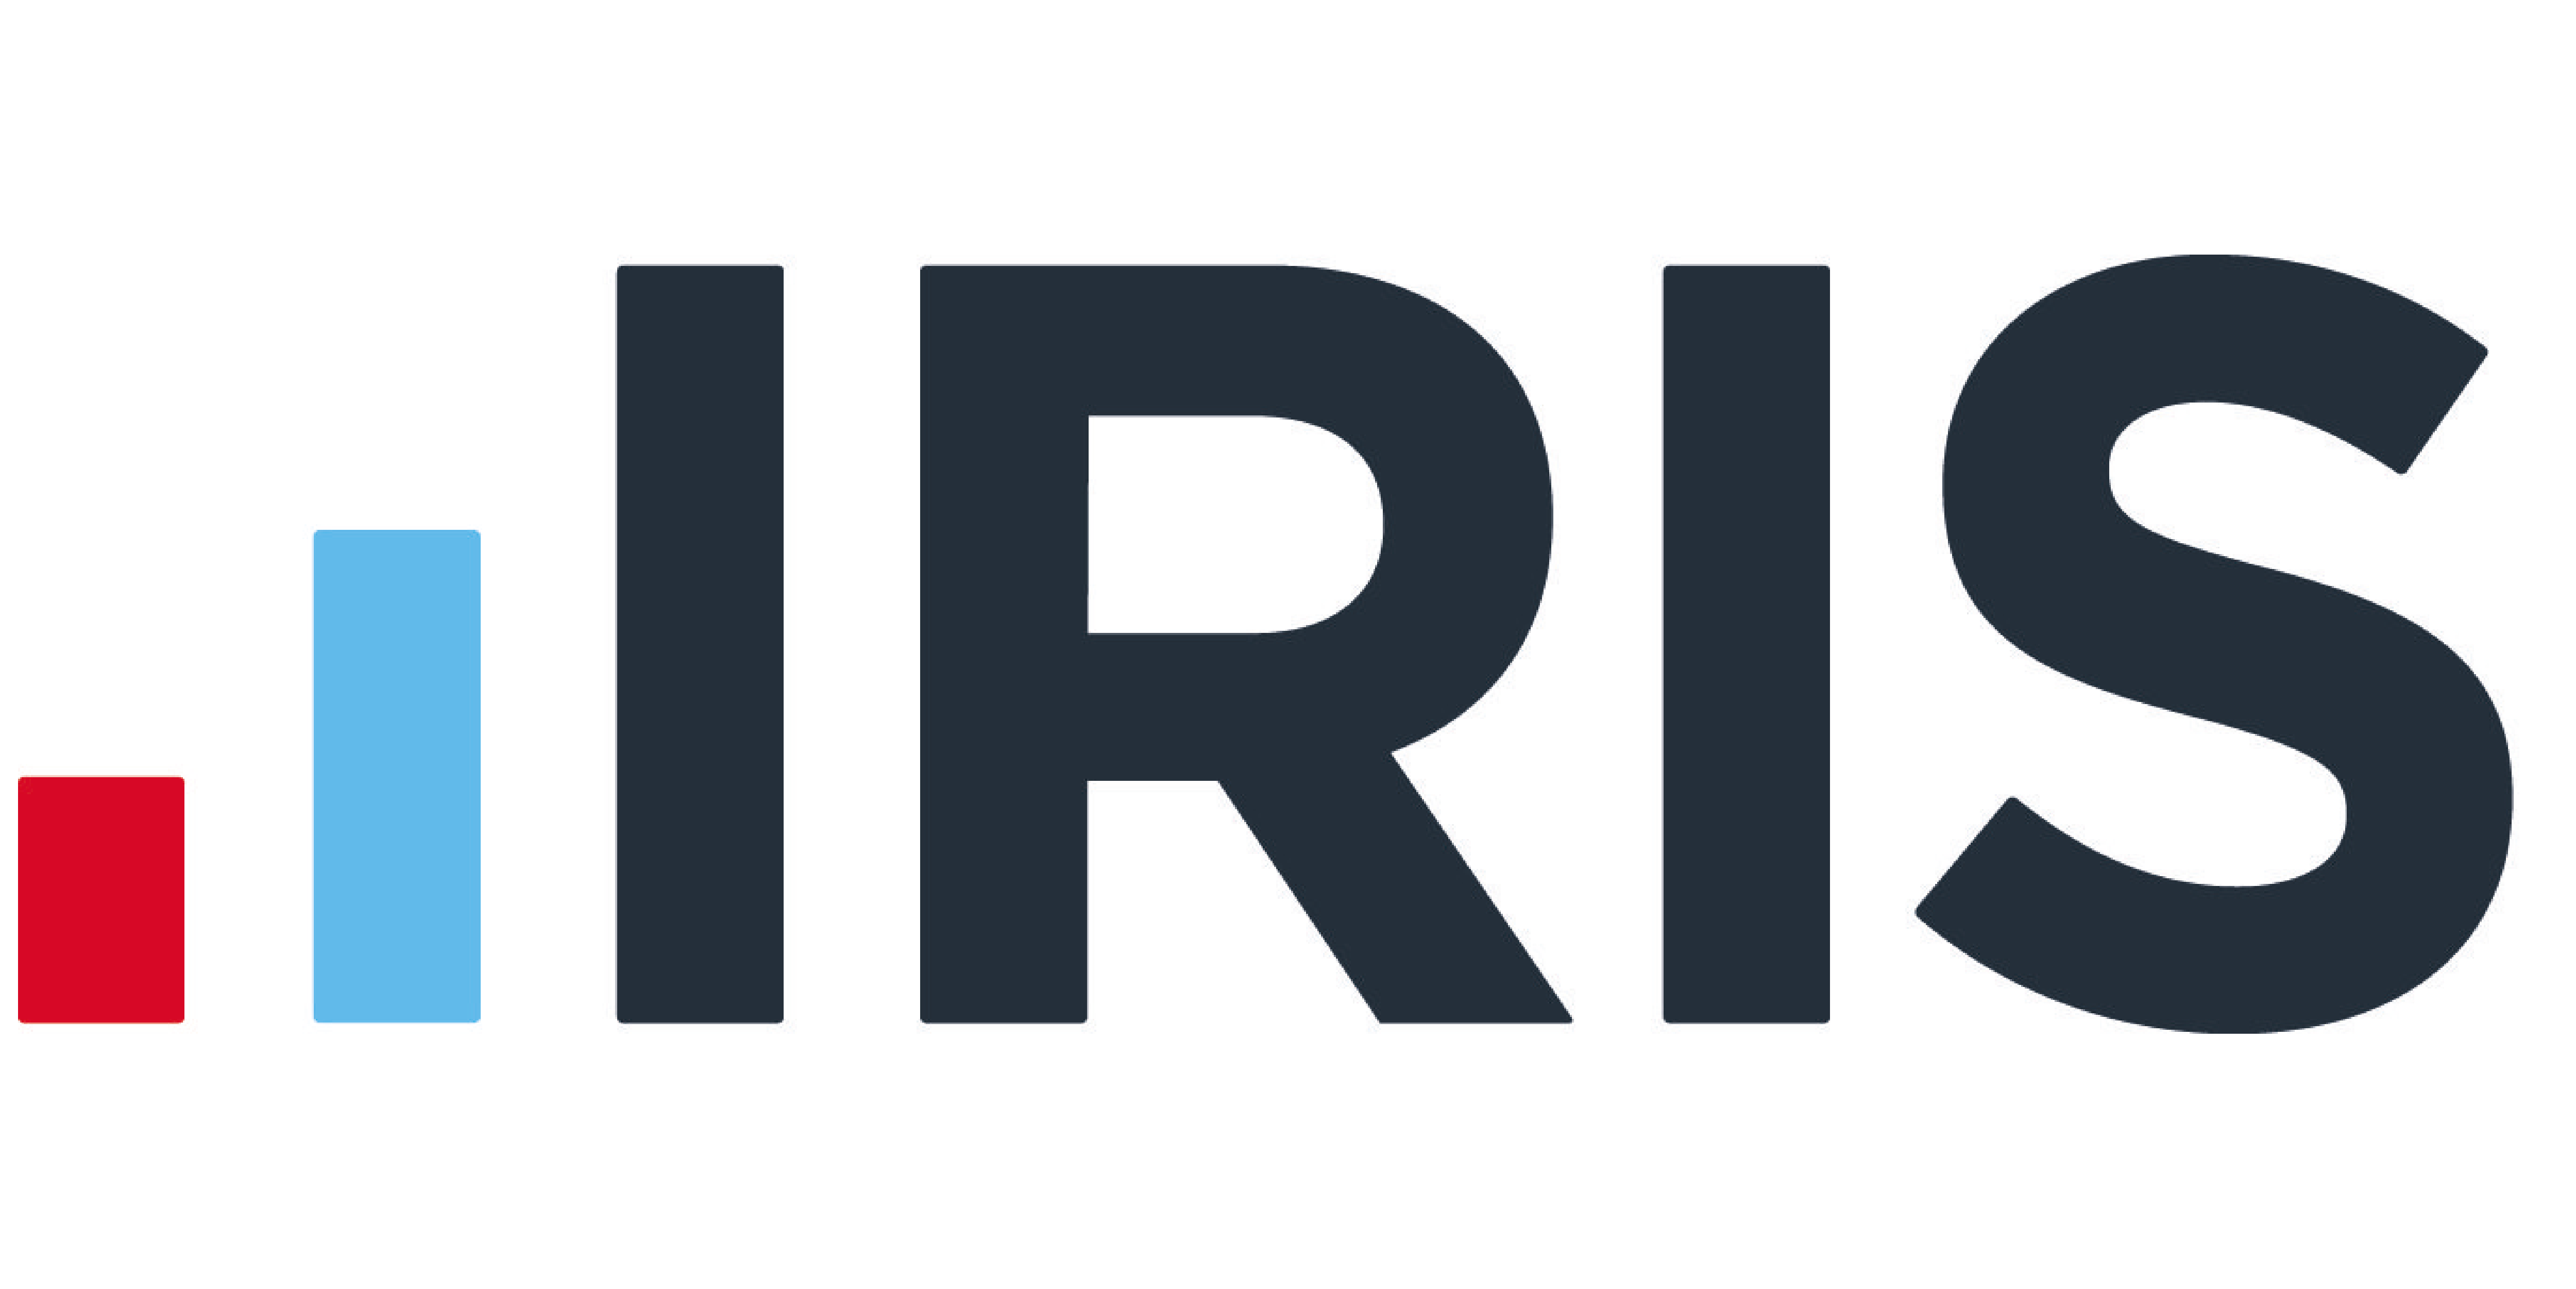 Switching from IRIS to BrightPay